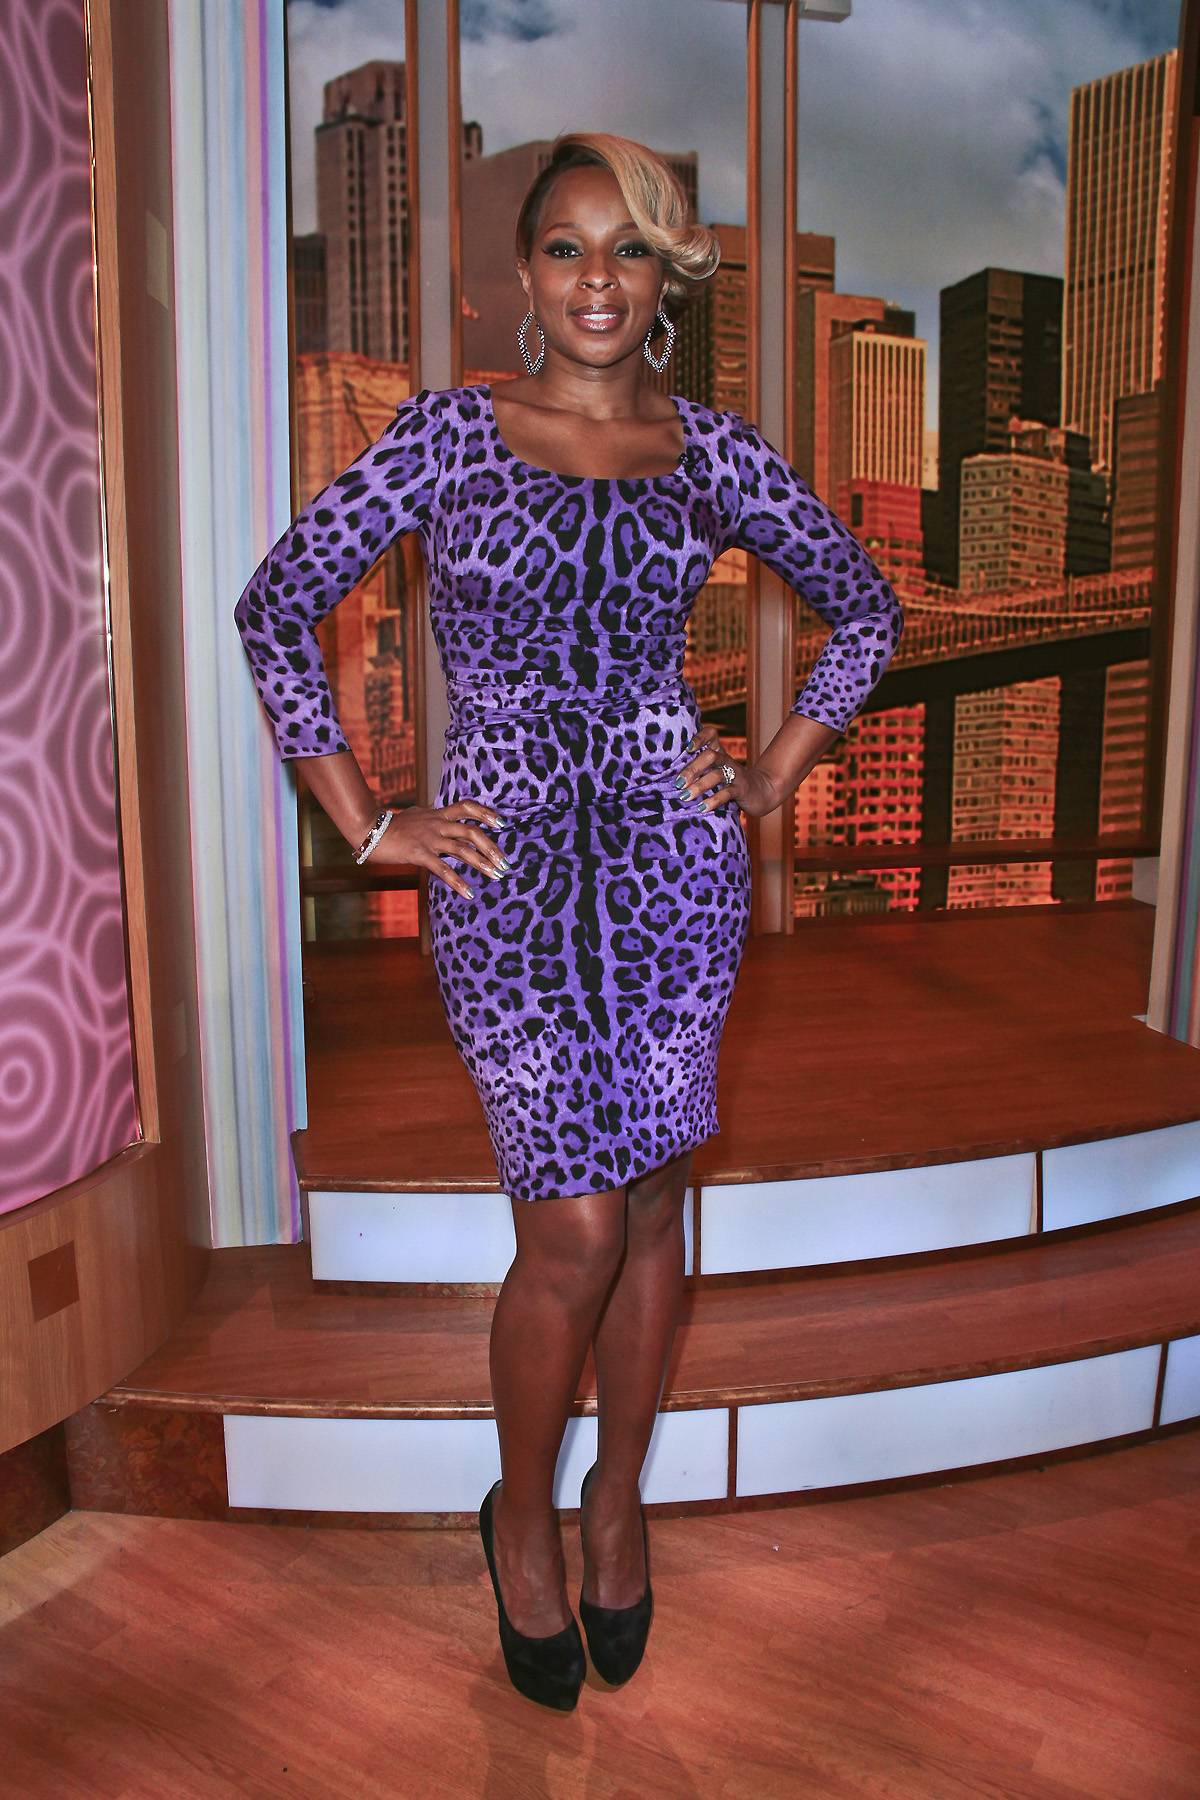 /content/dam/betcom/images/2012/02/Fashion-and-Beauty-02-01-02-15/020312-fashion-and-beauty-dime-mary-j-blige.jpg